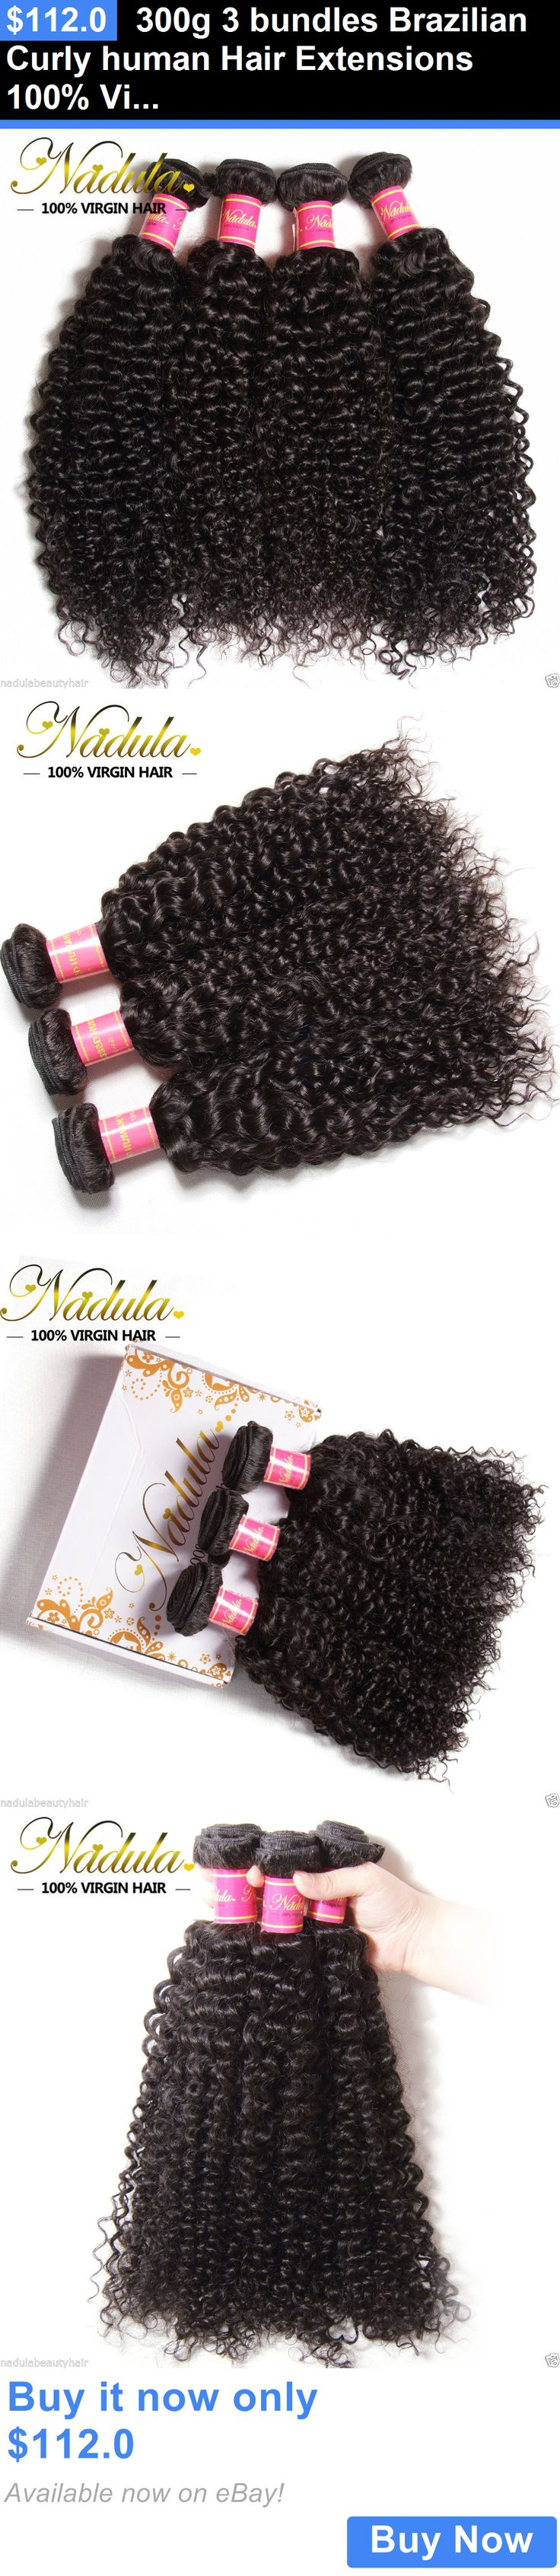 Hair Extensions: 300G 3 Bundles Brazilian Curly Human Hair Extensions 100% Virgin Hair Weave Weft BUY IT NOW ONLY: $112.0